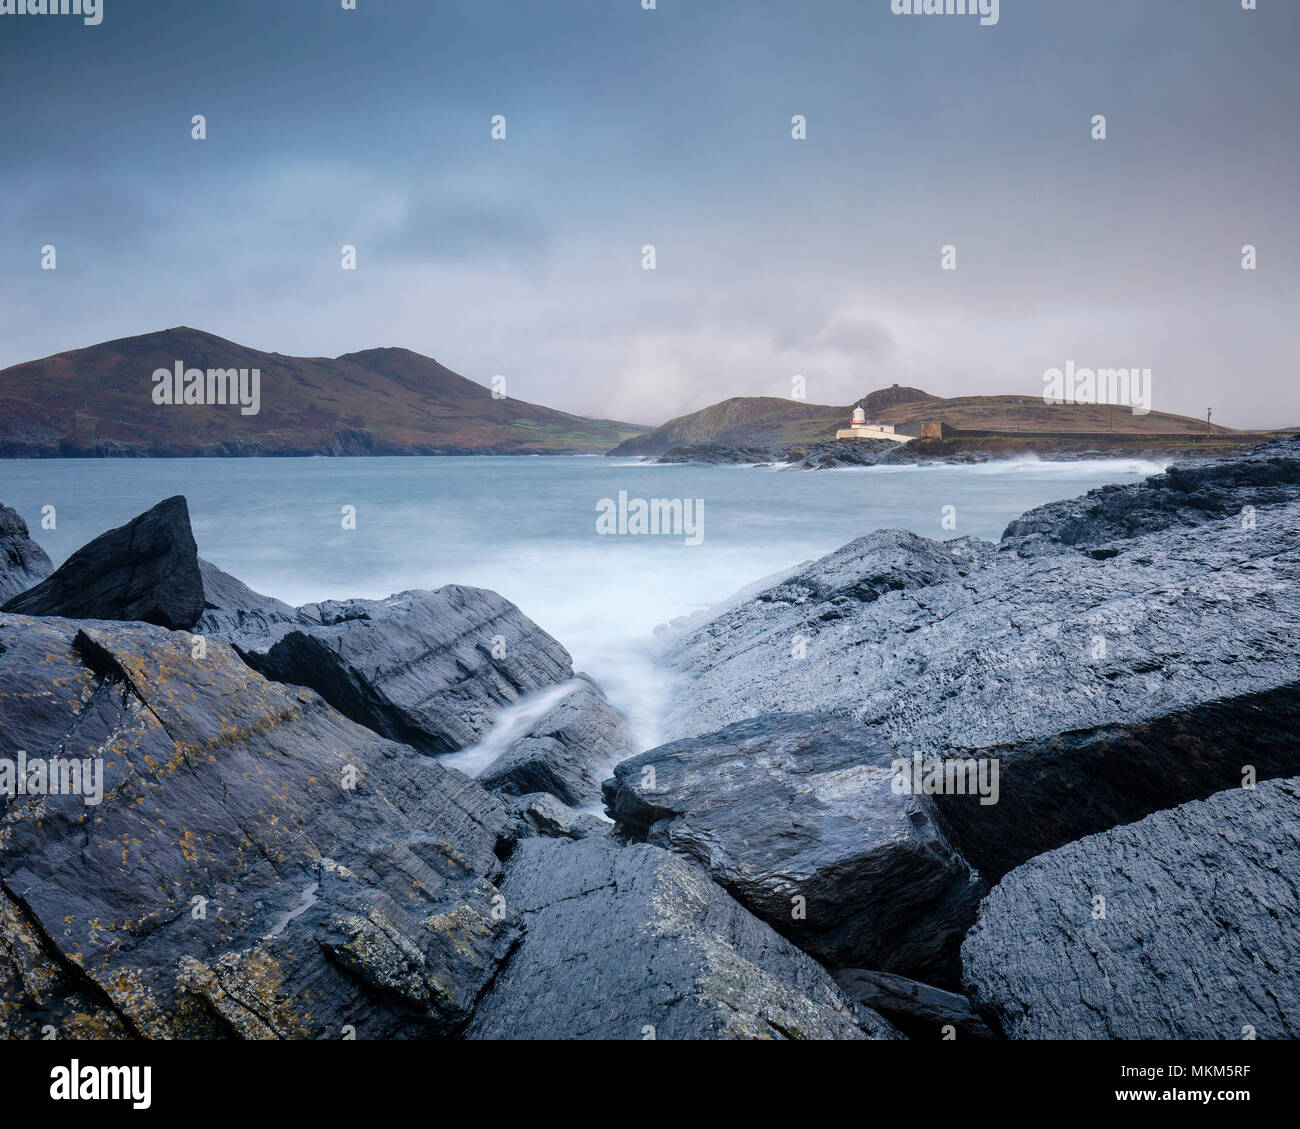 Scenic photograph looking out on Valentia Island Lighthouse County Kerry Ireland - Stock Image